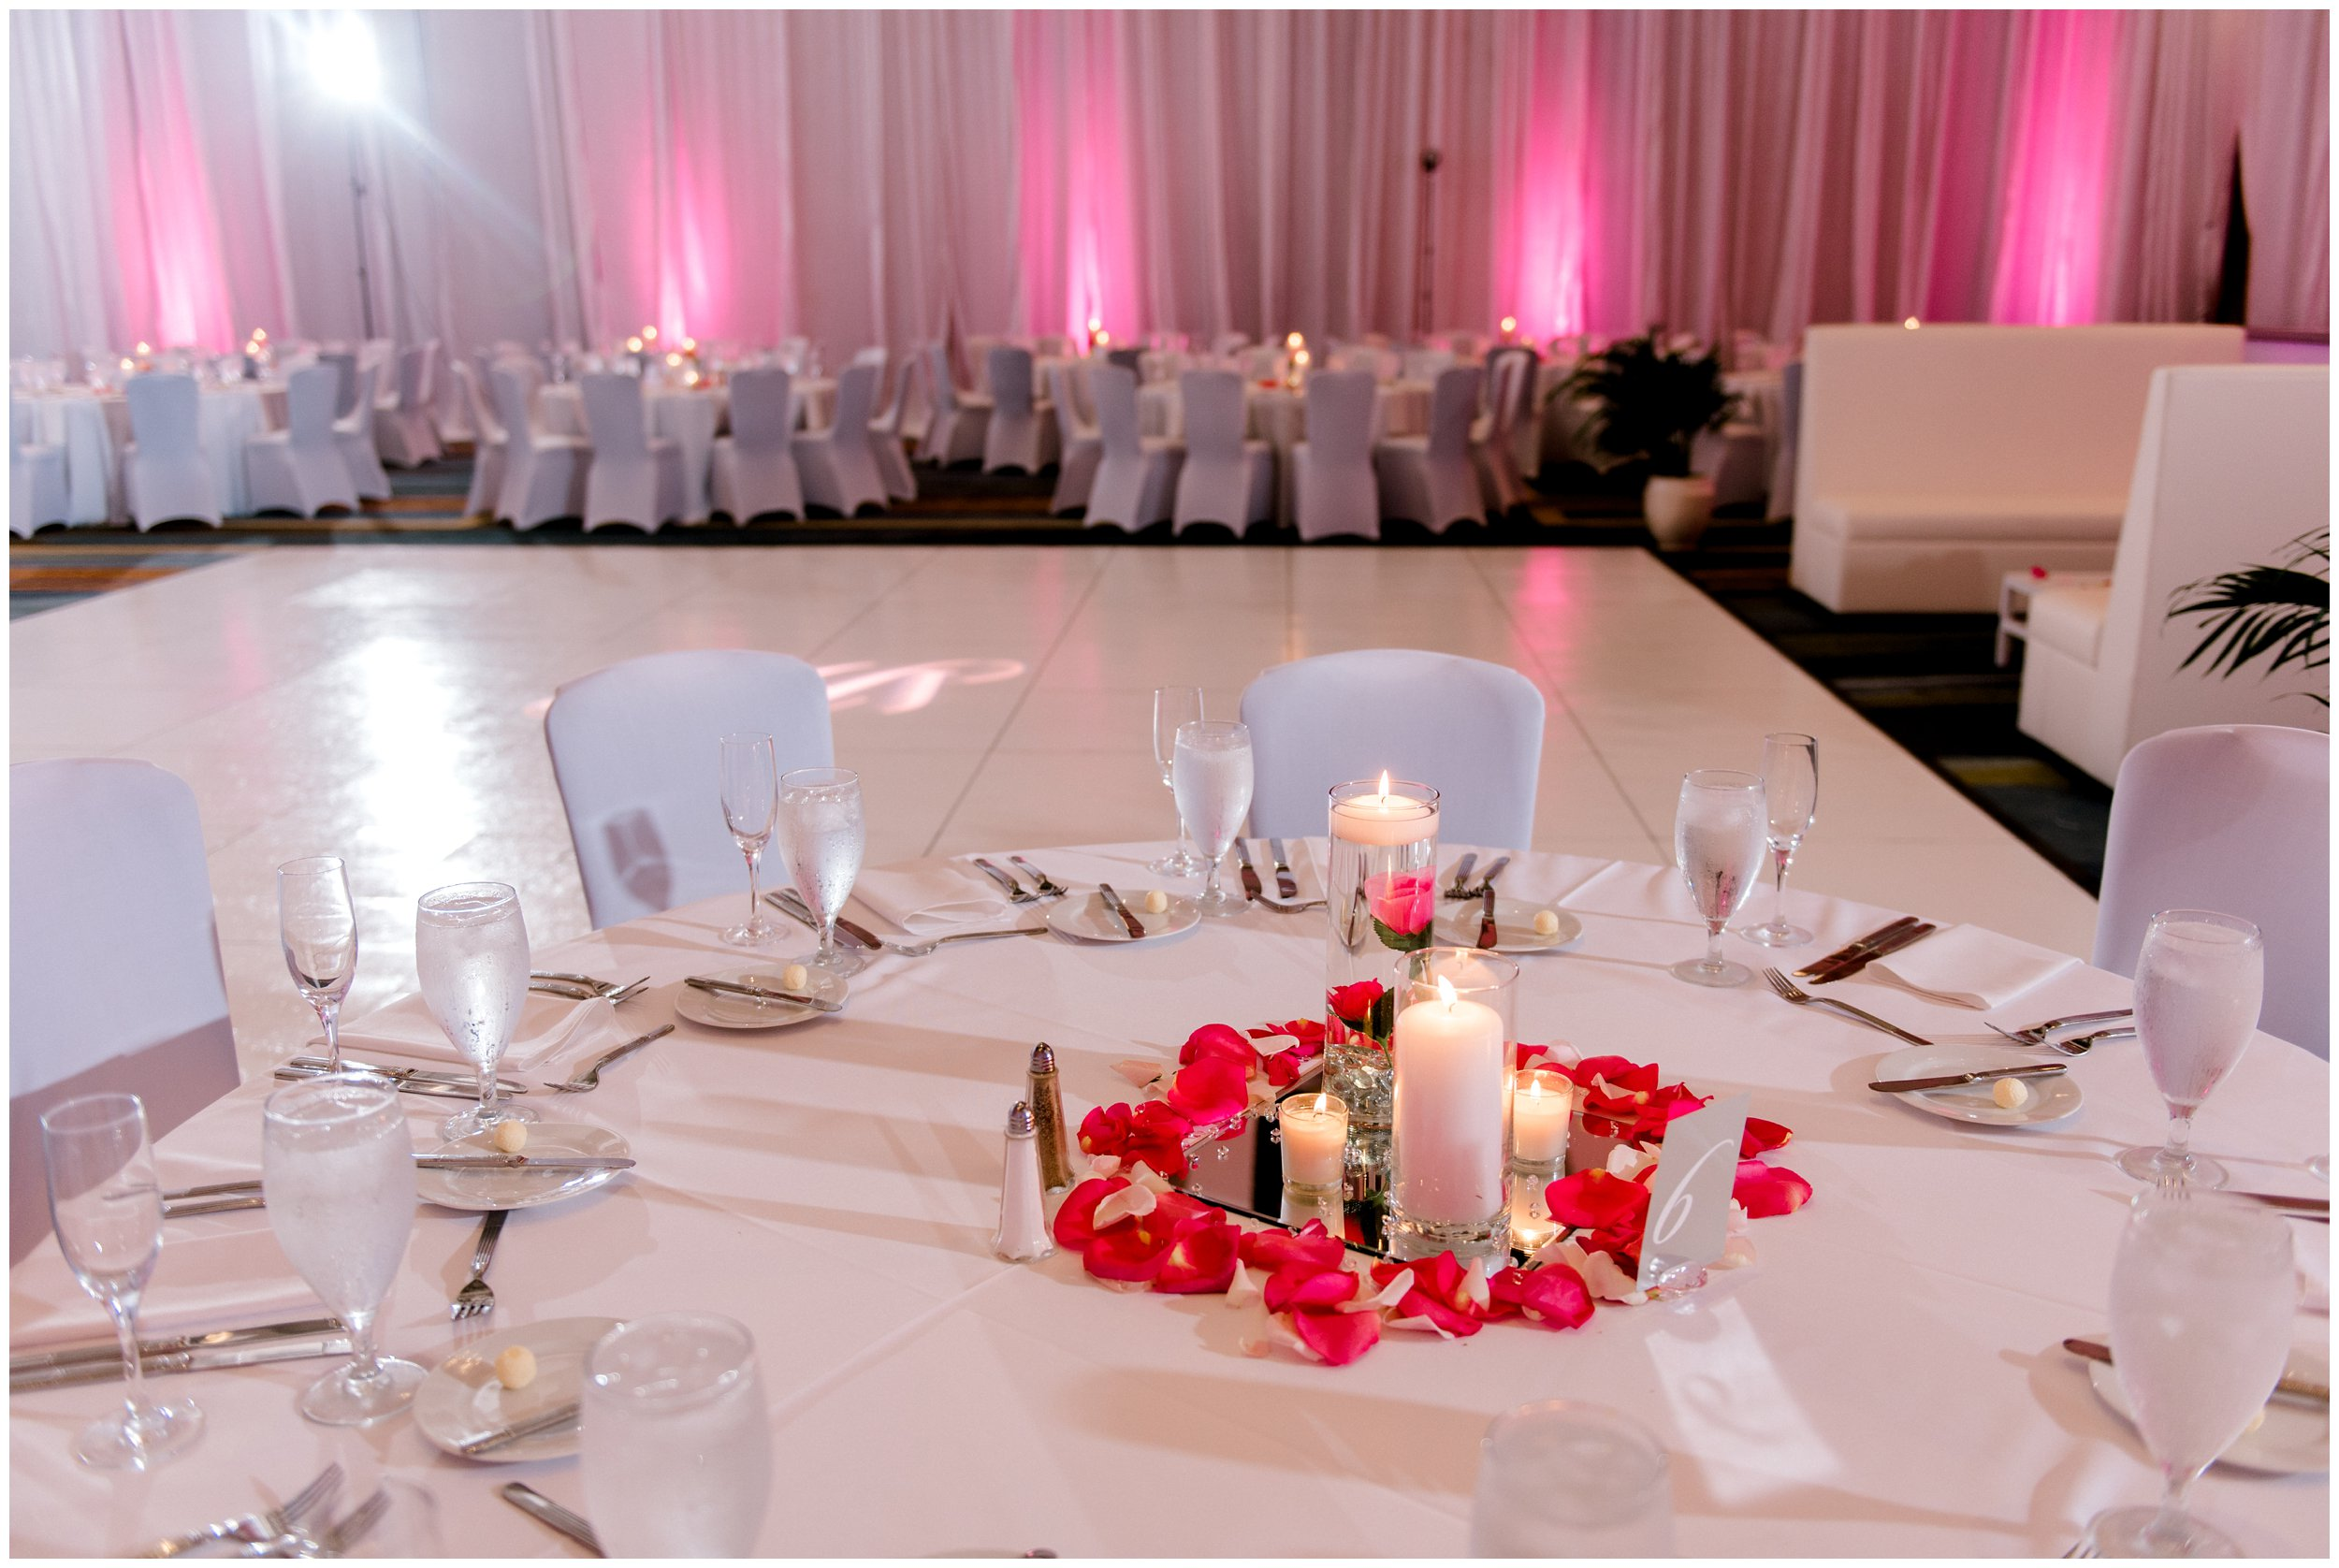 Hyatt Regency wedding venue, pink and white details